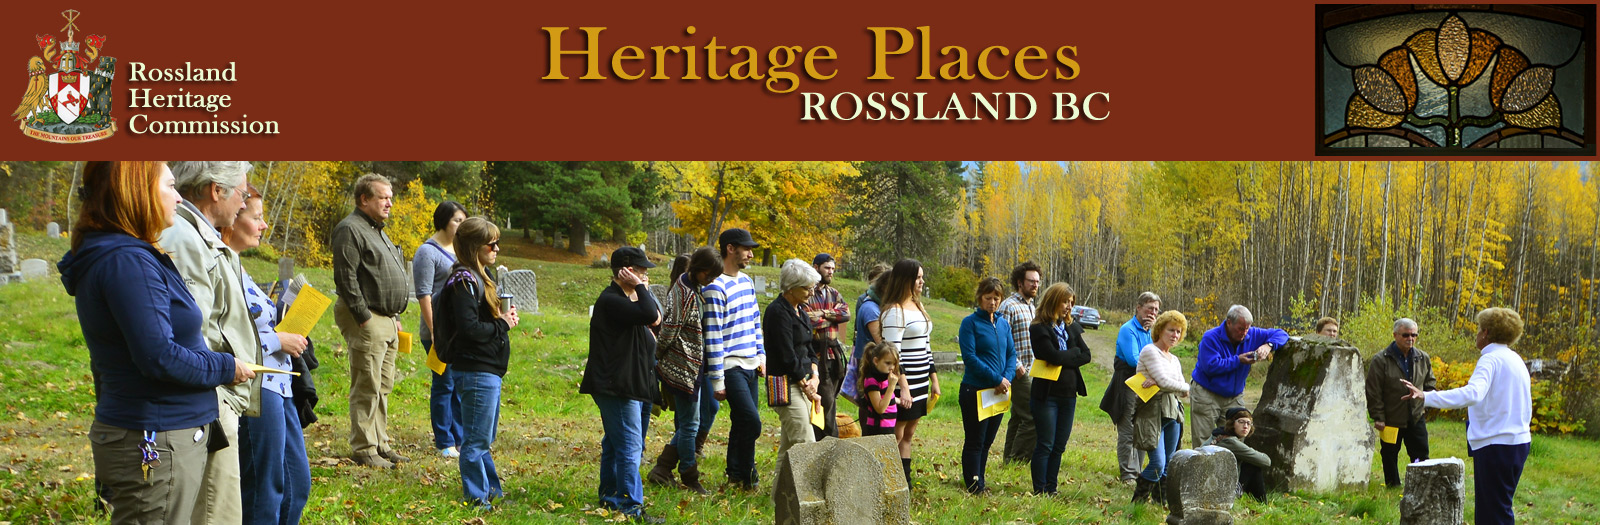 Rossland Heritage Commission - Heritage Places Banner